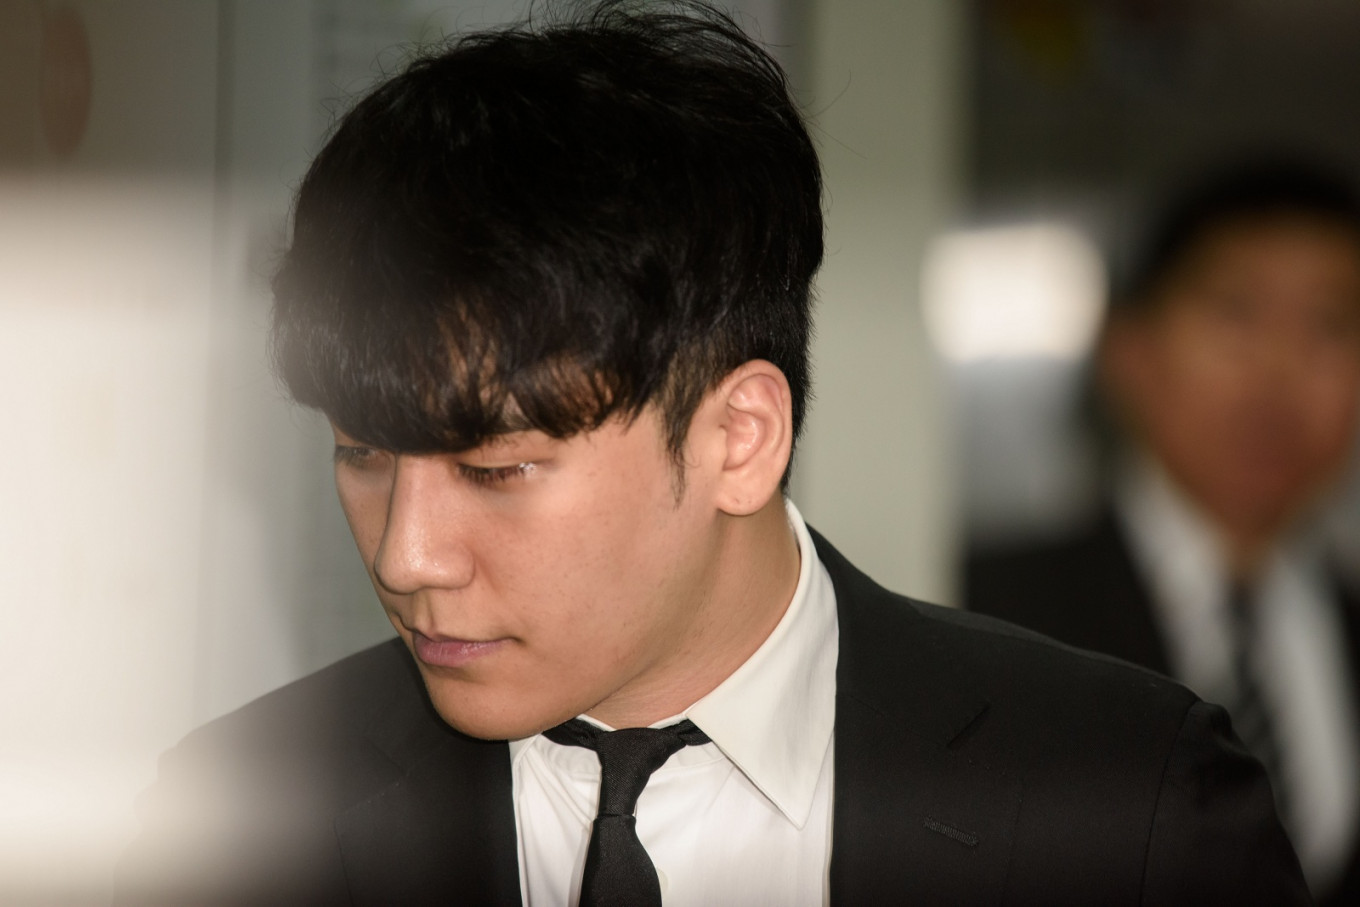 Arrest warrant sought for Seungri over procuring prostitutes, illegal gambling